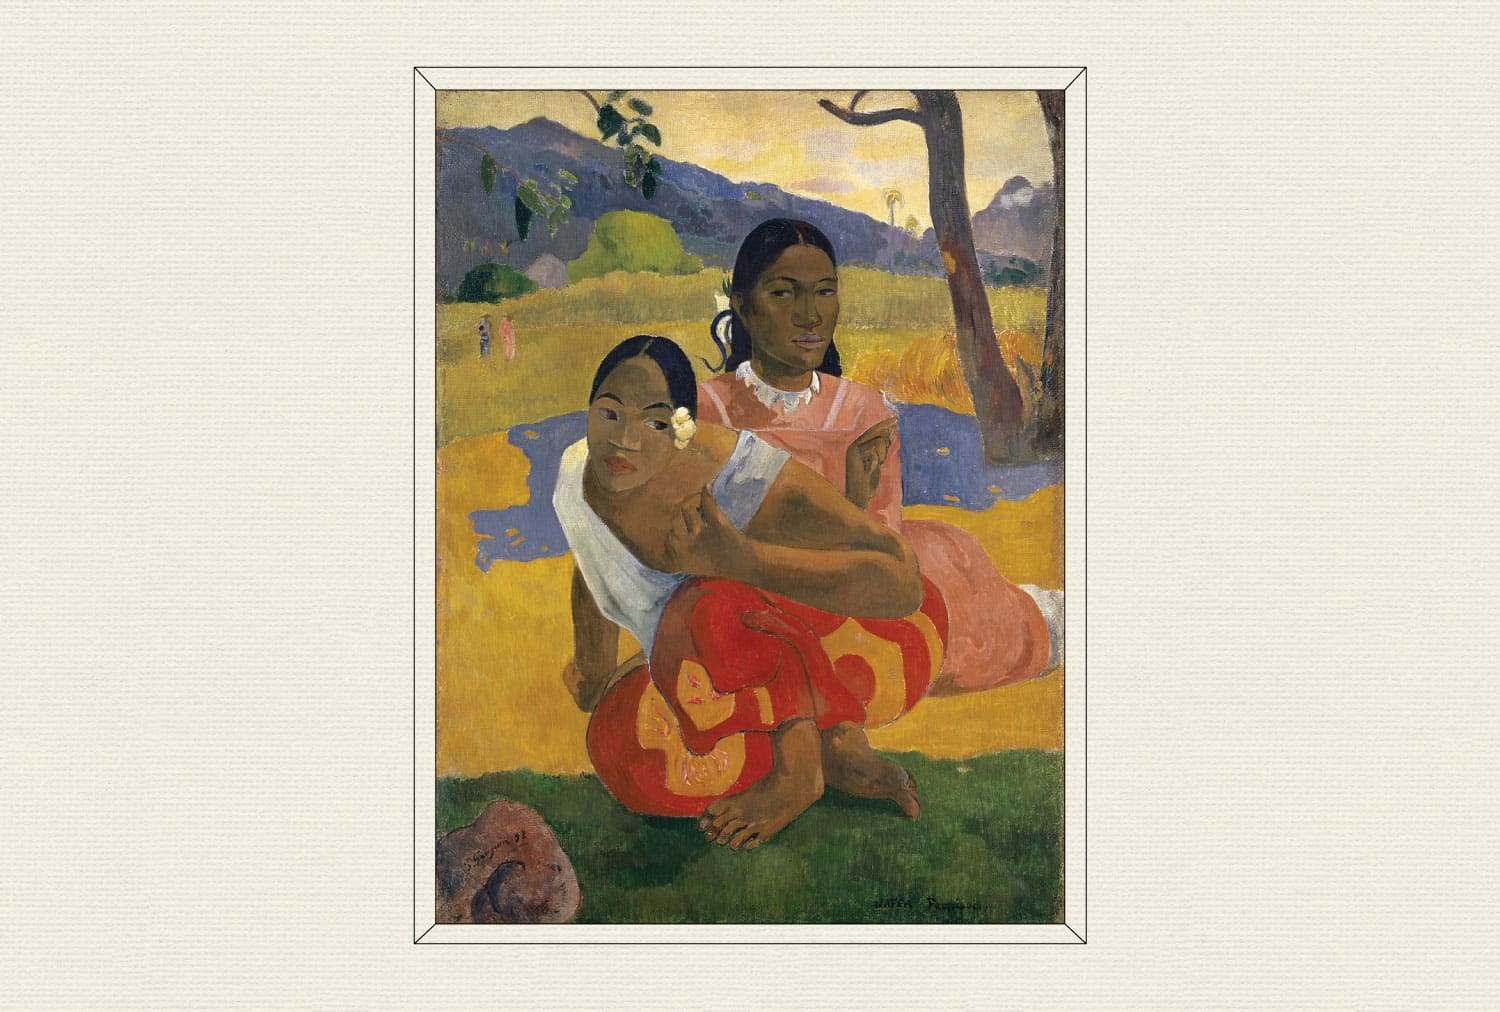 Nafea Faa Ipoipo (When Will You Marry?), 1892, by Paul Gauguin